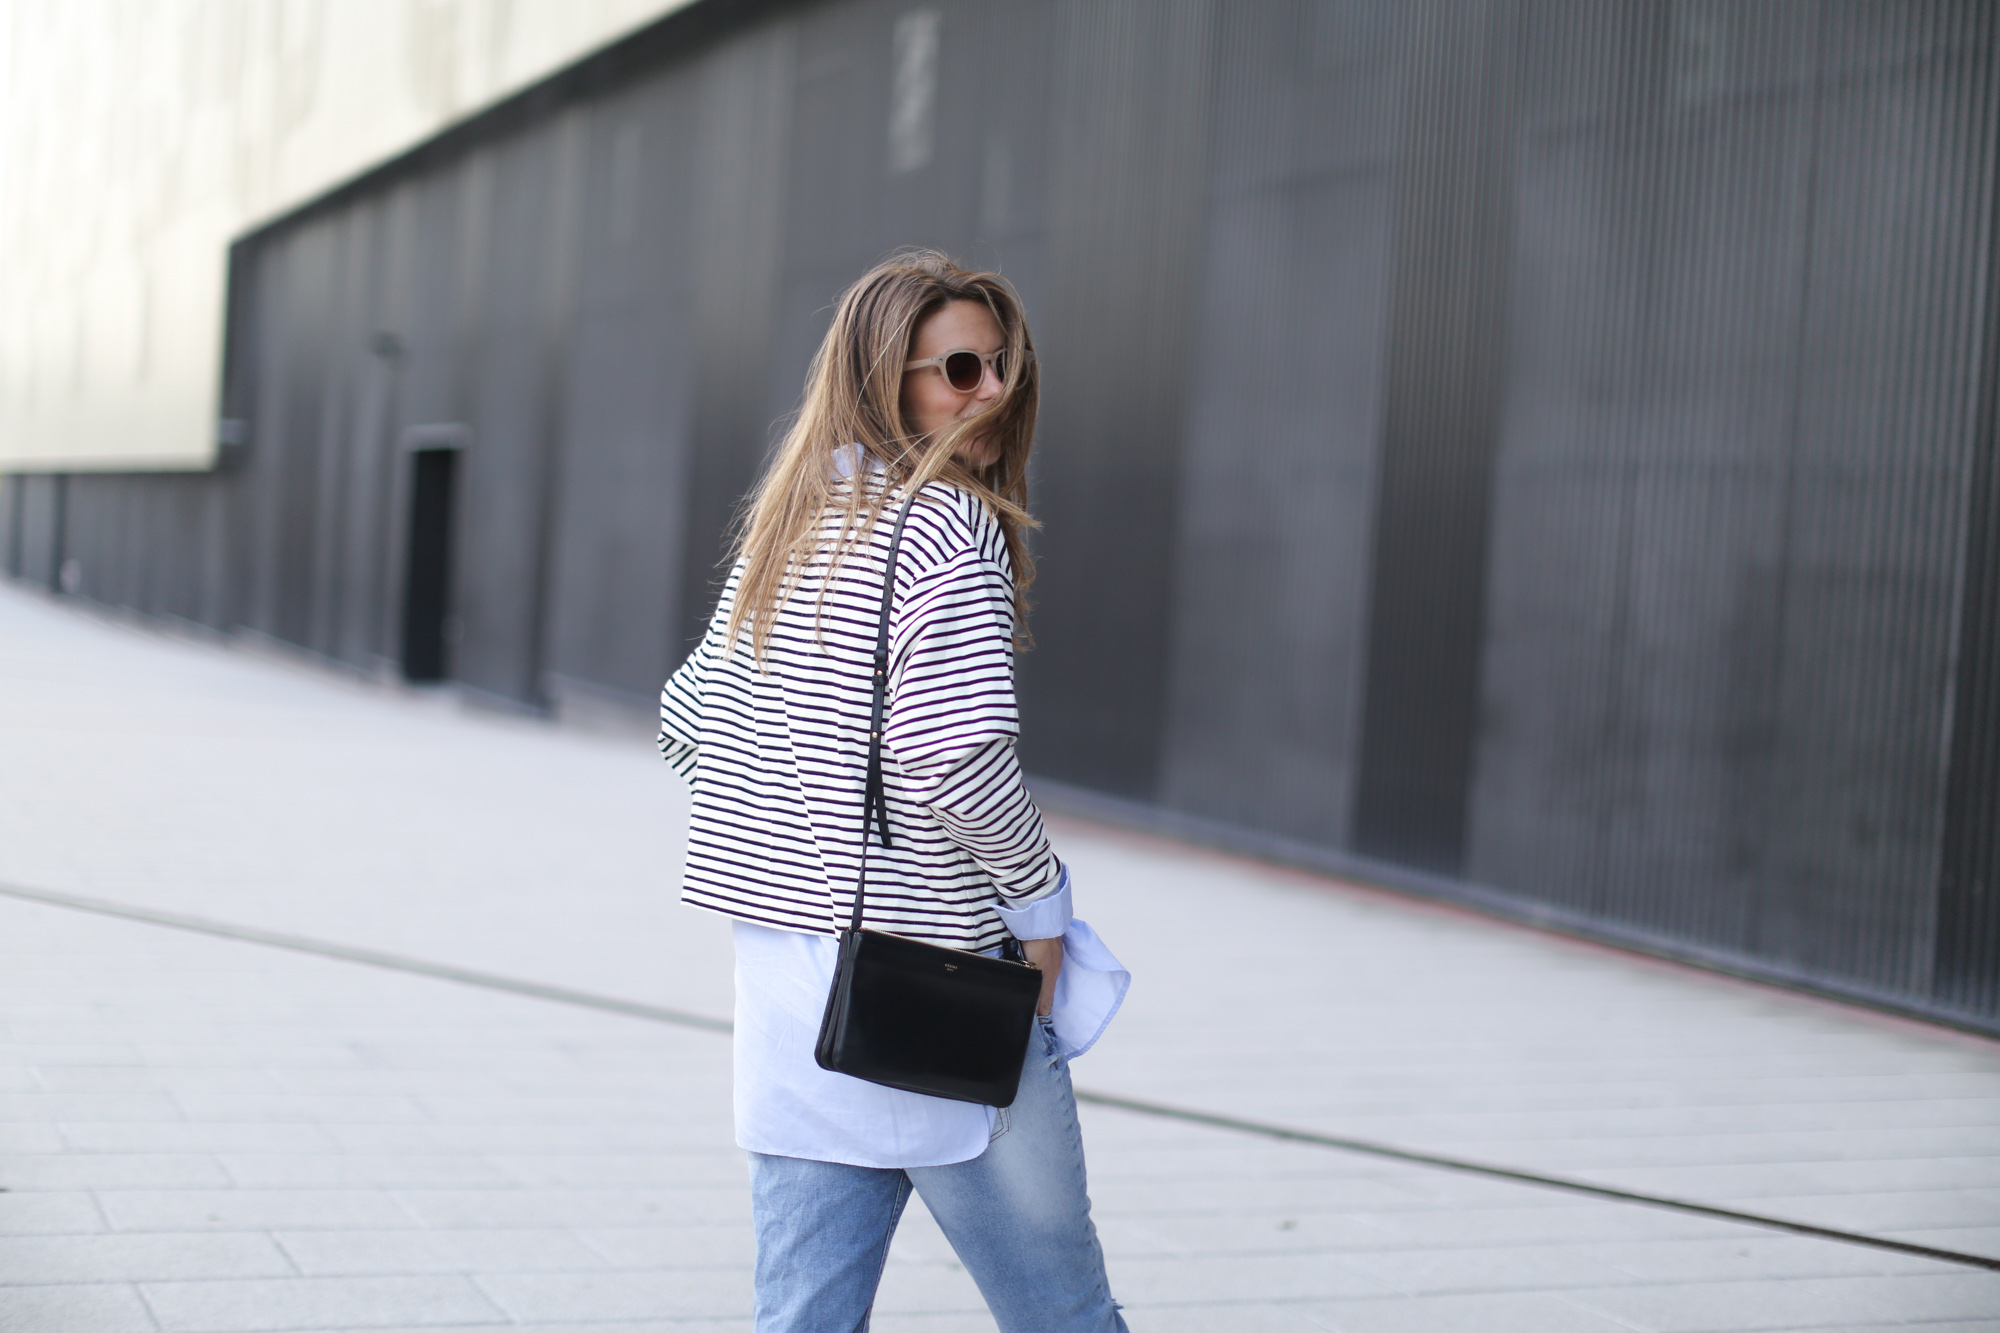 Clochet-streetstyle-suiteblanco-boyfriend-jeans-striped-sweater-adidas-stan-smith-14